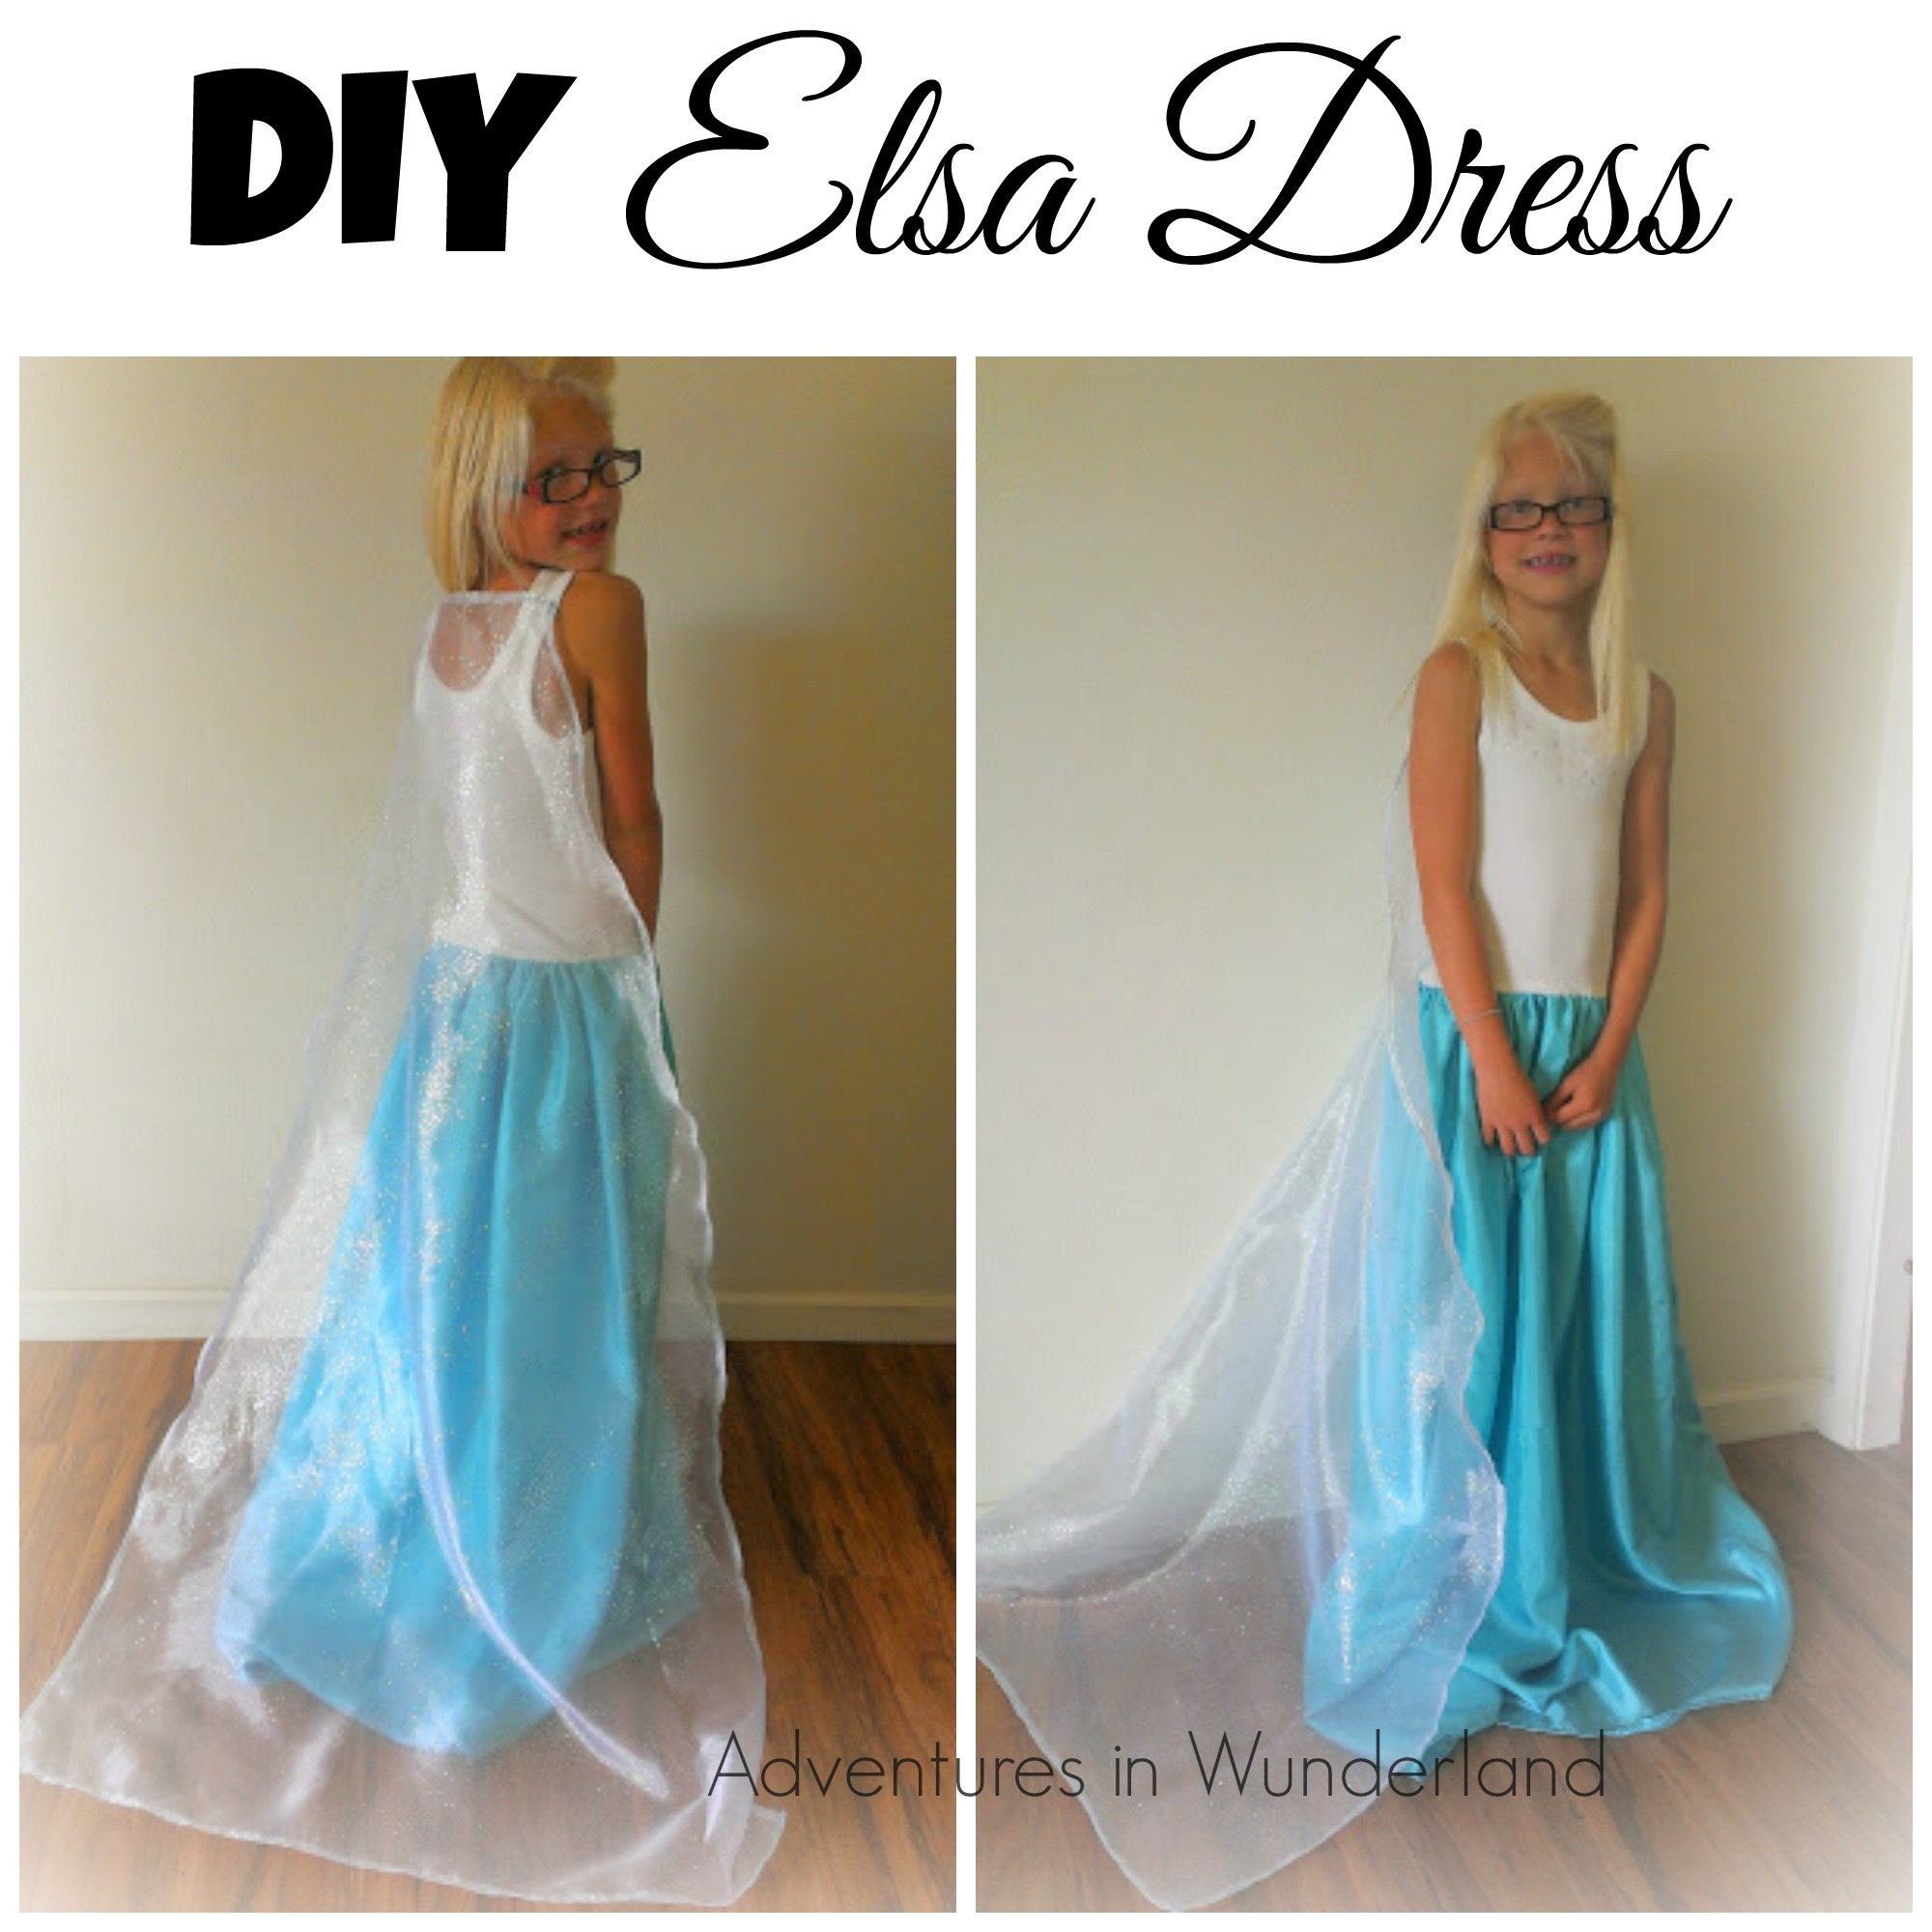 DIY Elsa Dress for less than $20